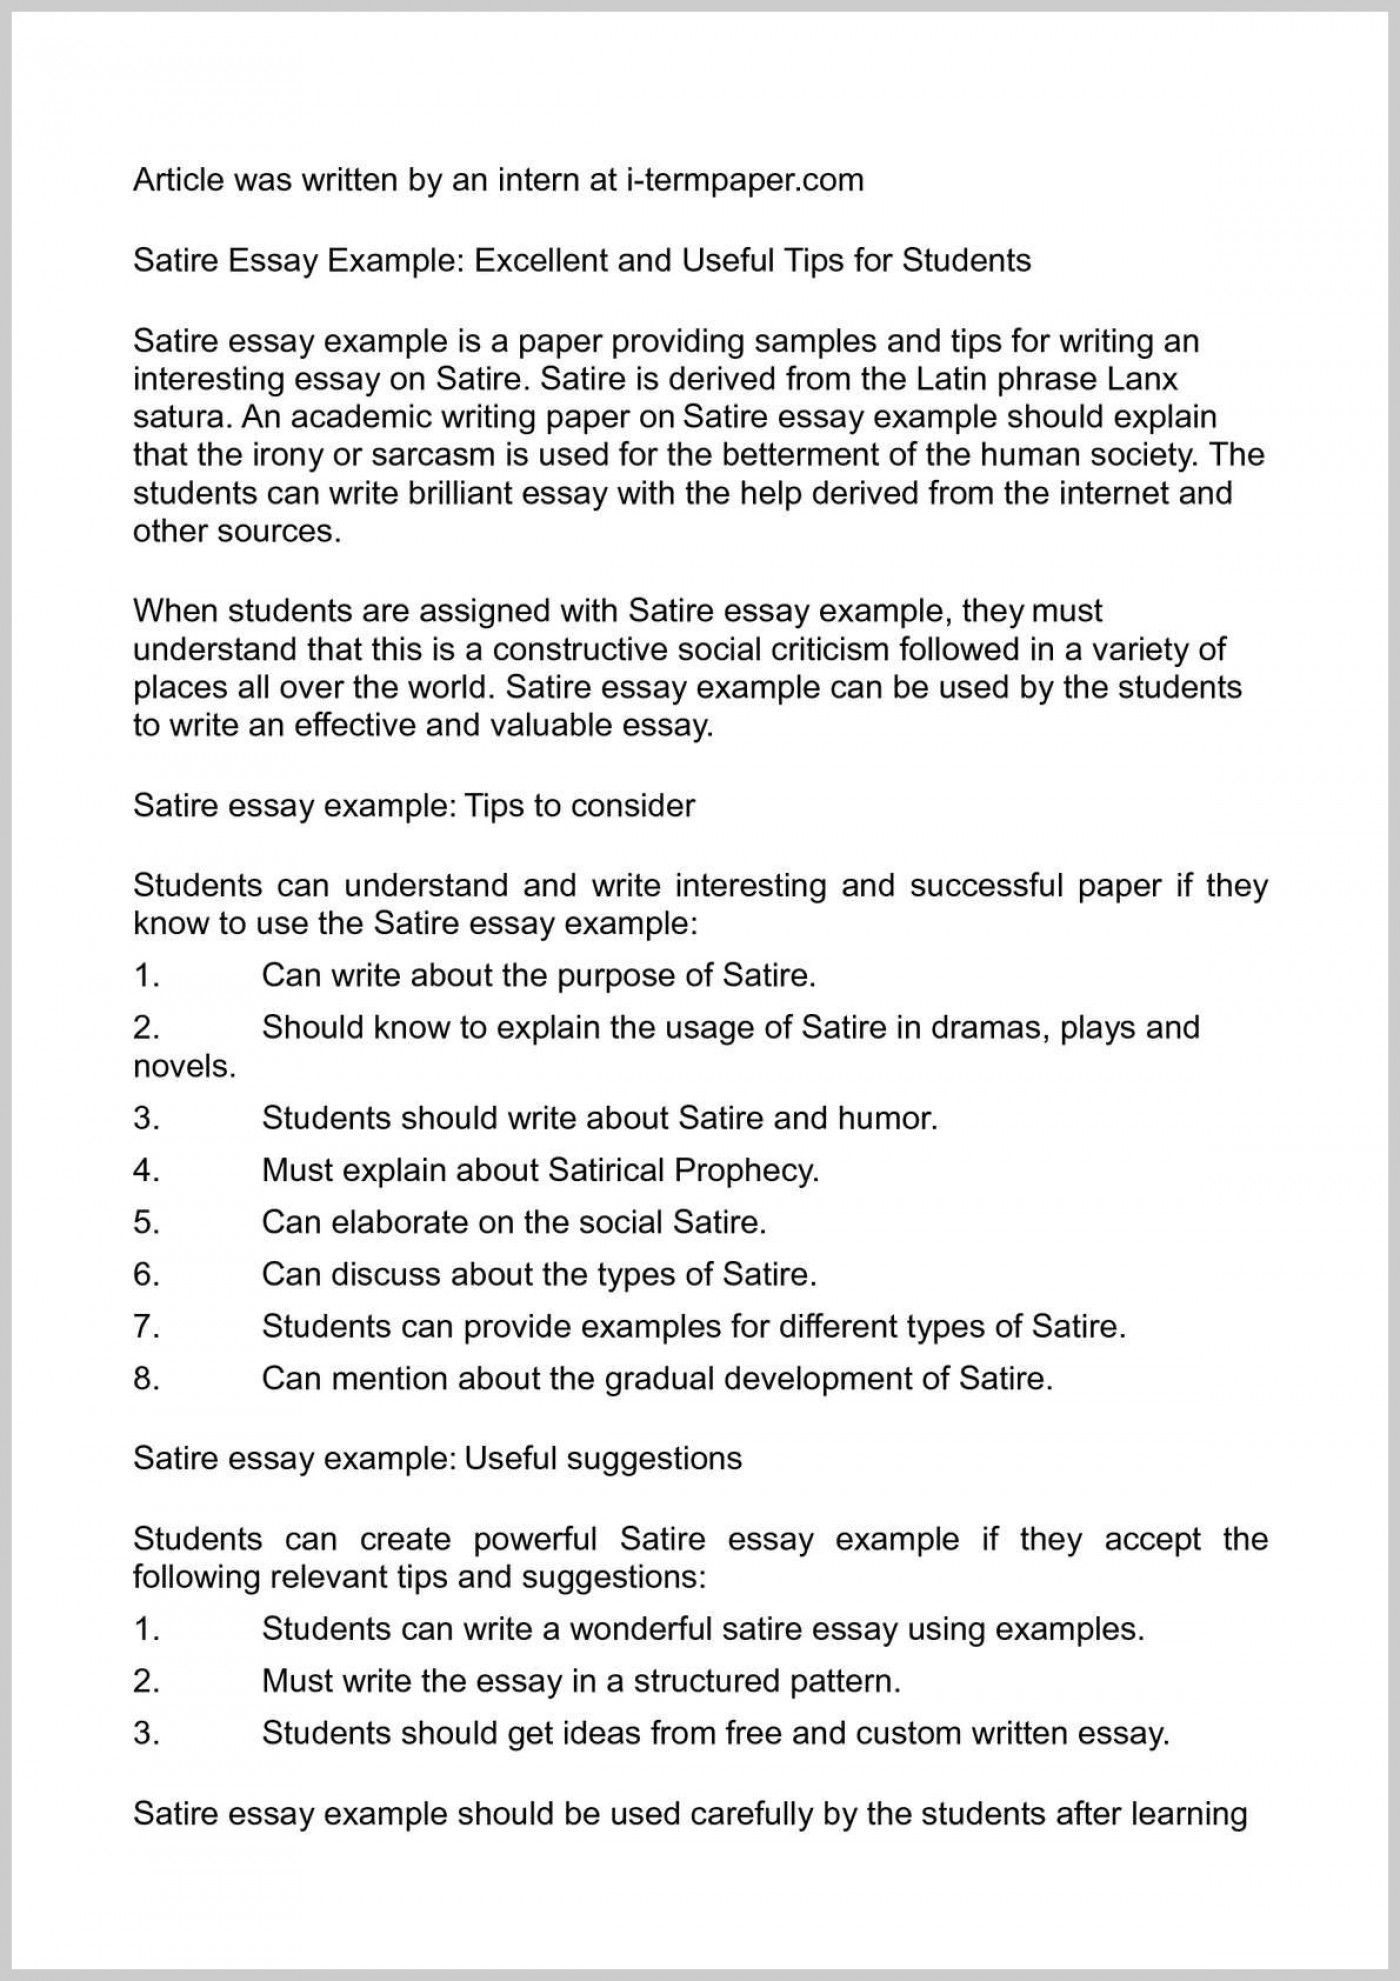 014 Essay Satiric Negative Impacts Of Social Media The Best Writing Satirical Topics Frightening Good Topic Ideas 1400